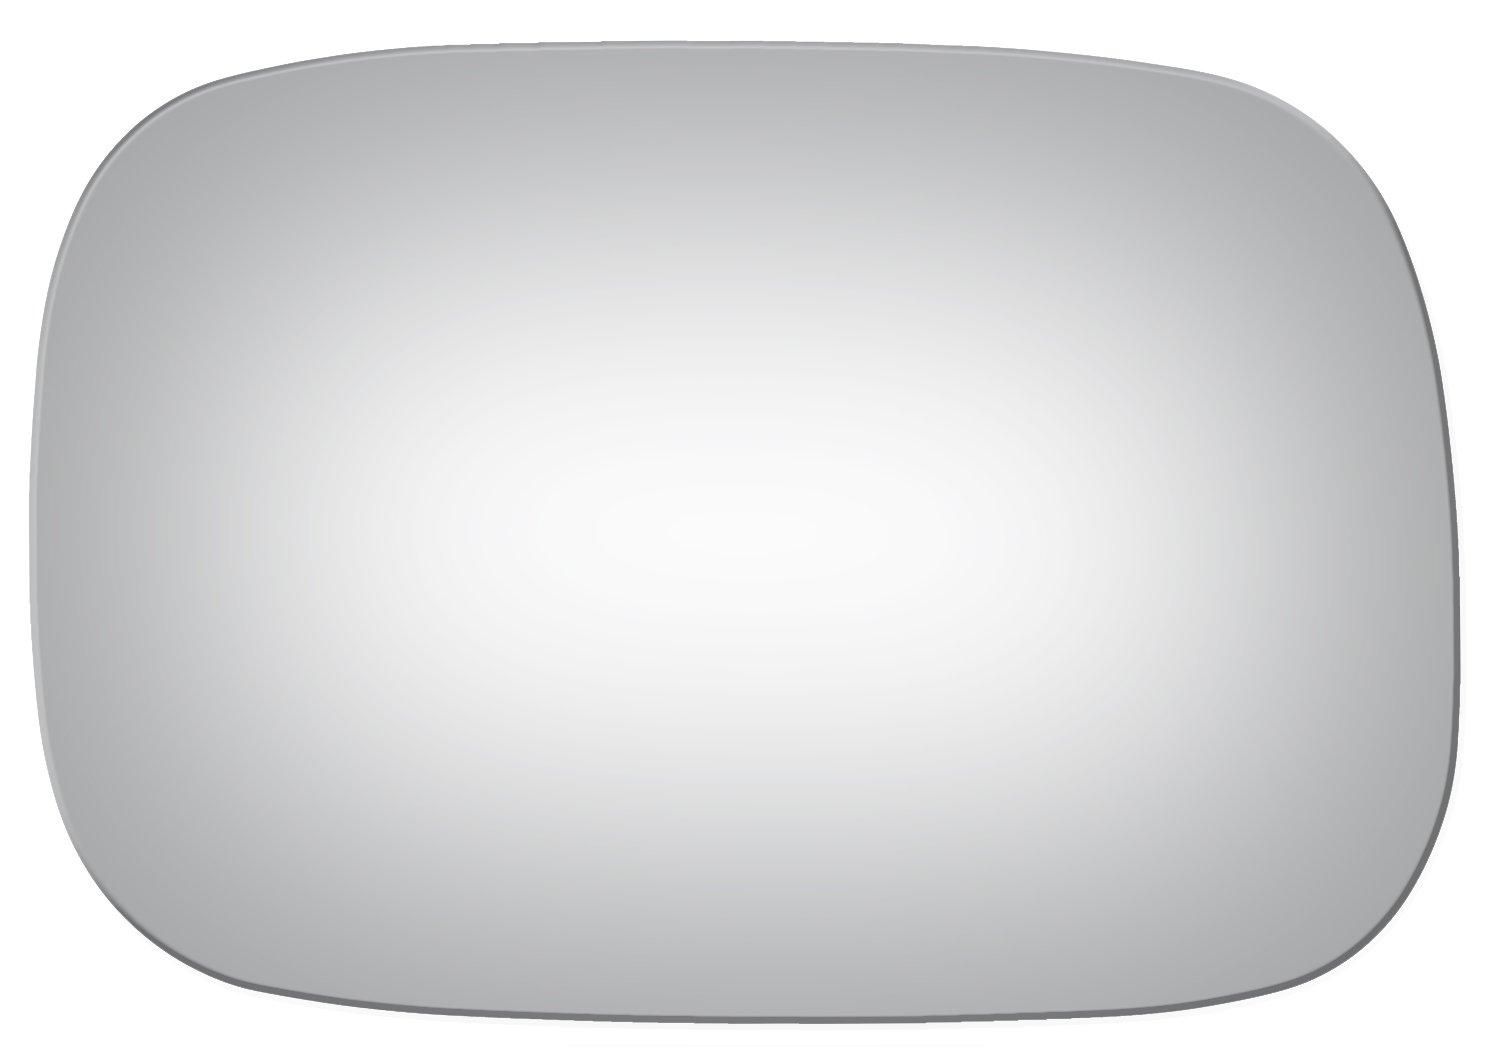 2005, 2006, 2007, 2008, 2009, 2010 Burco 4086 Flat Driver Side Power Replacement Mirror Glass for 05-10 Toyota Avalon